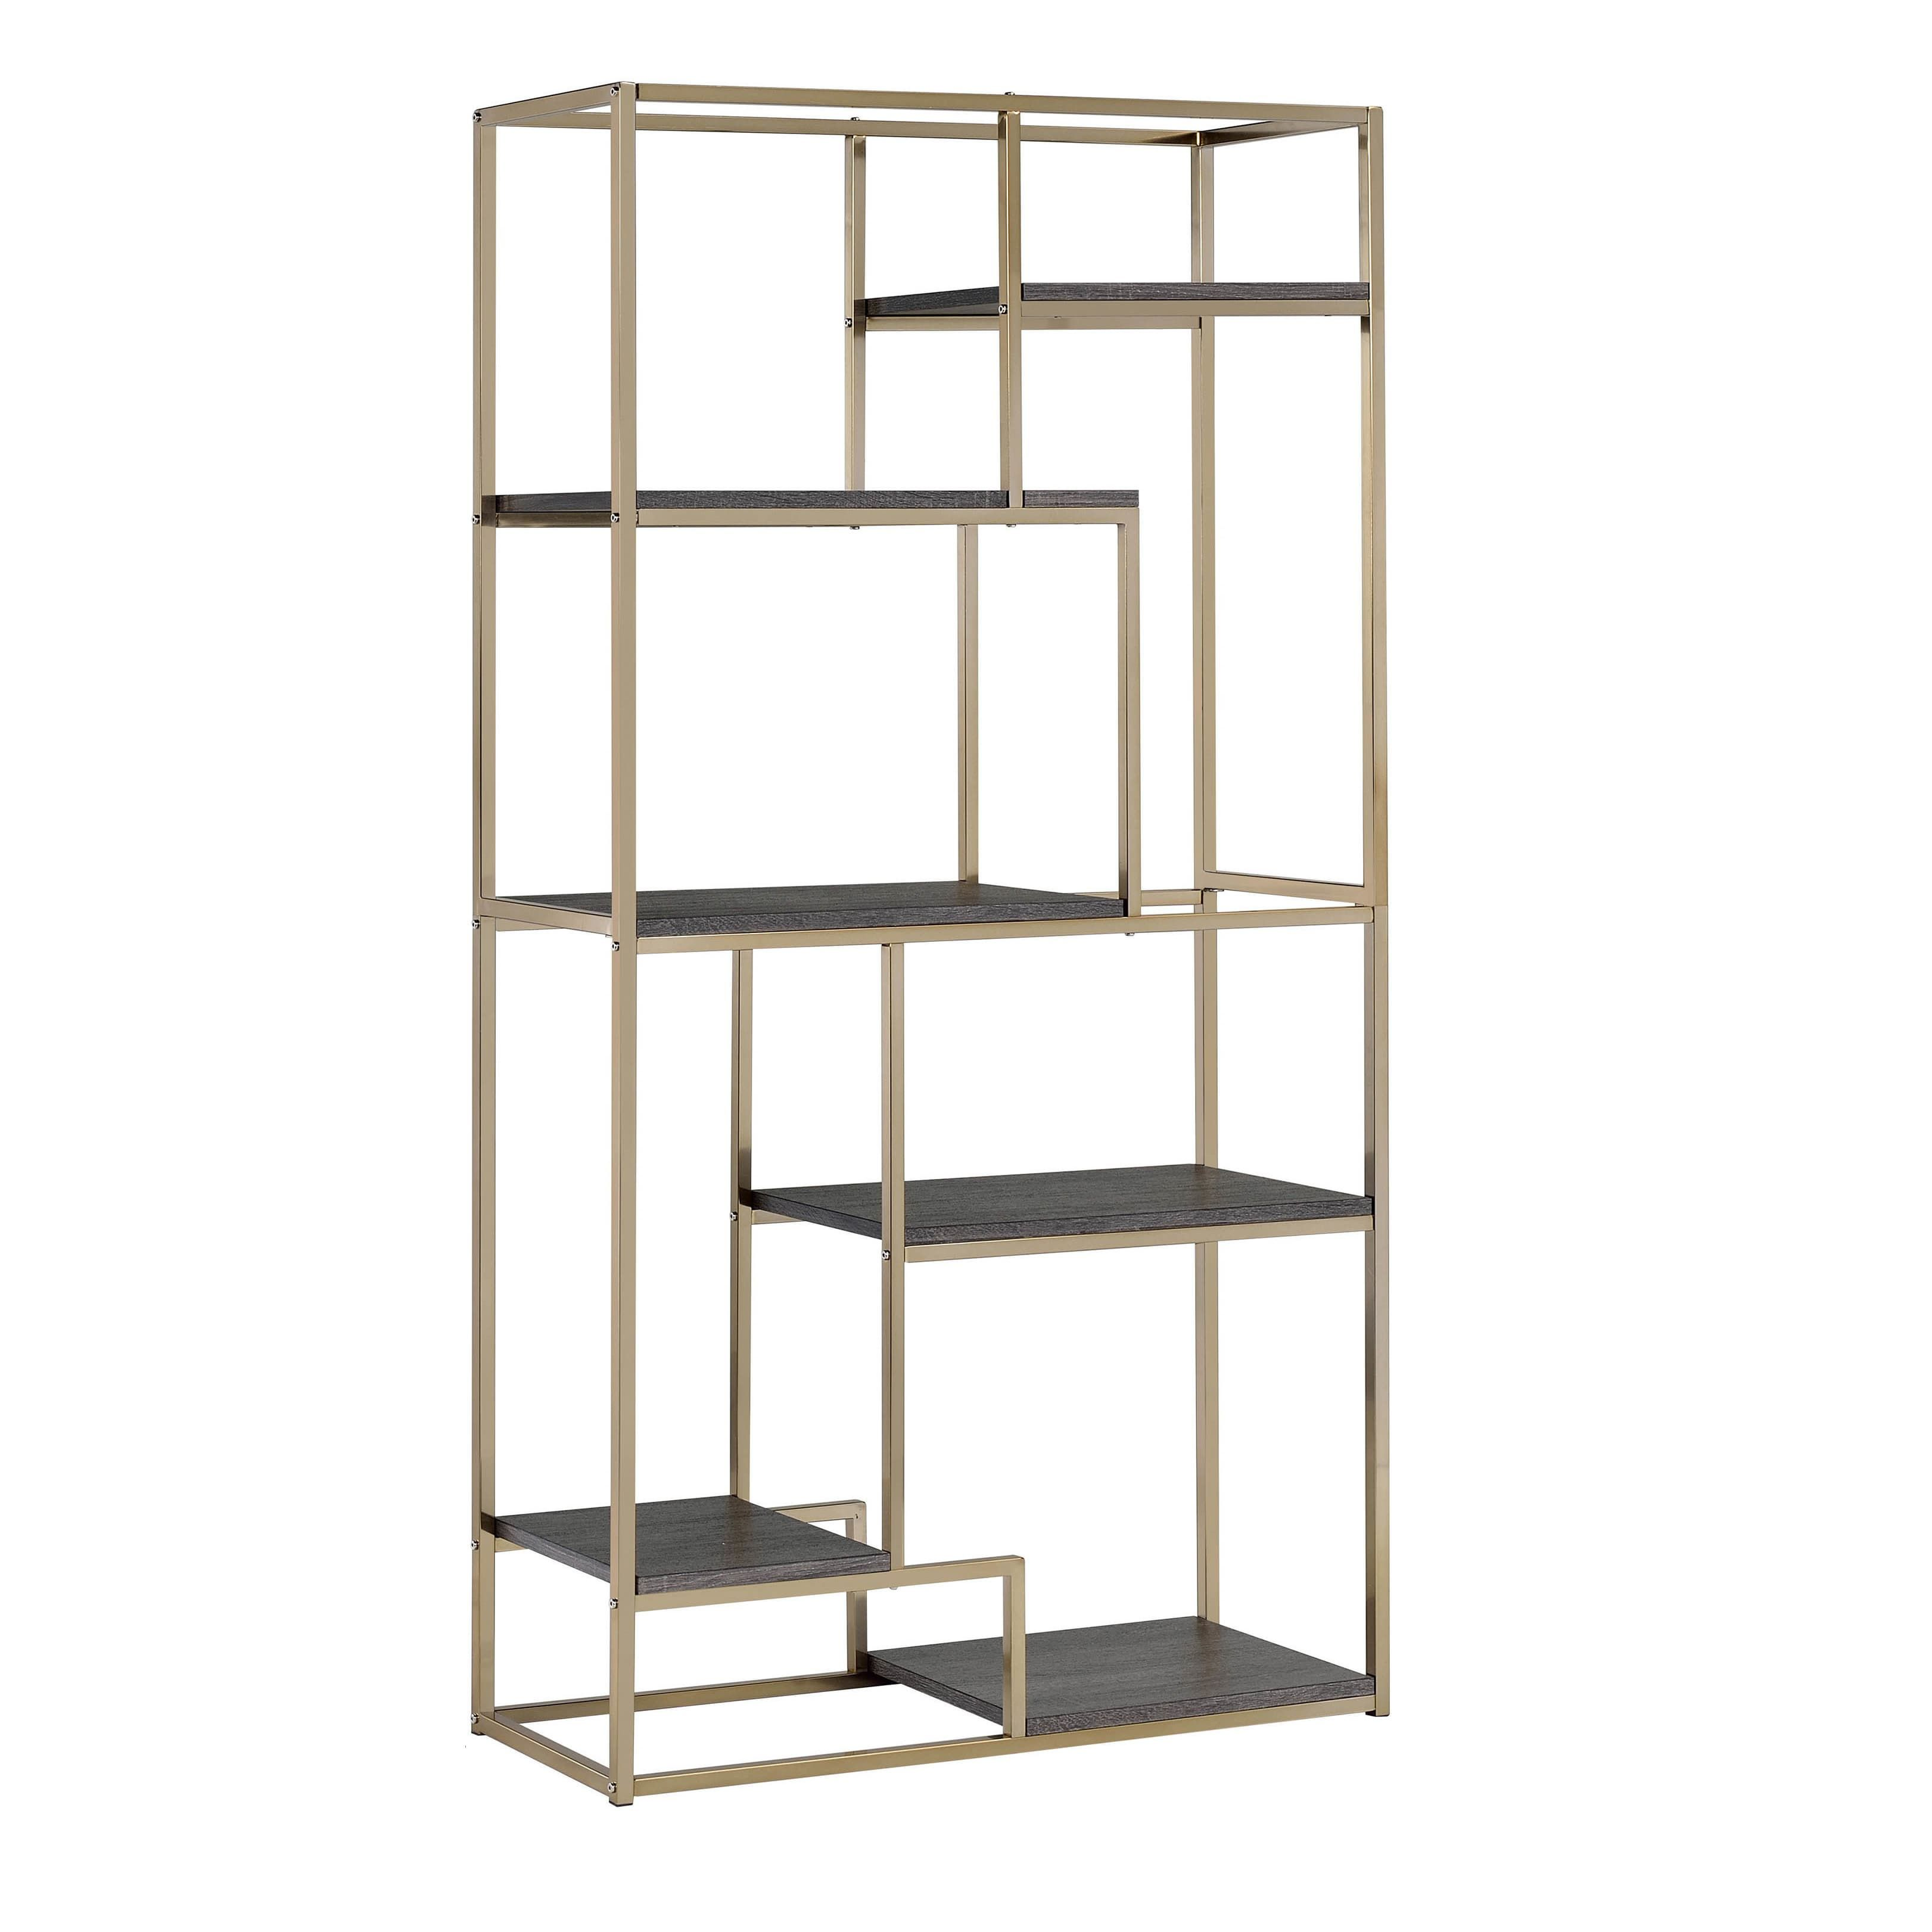 Furniture Of America Nara Contemporary 6 Shelf Tiered Open Bookcase |  Overstock.com Shopping